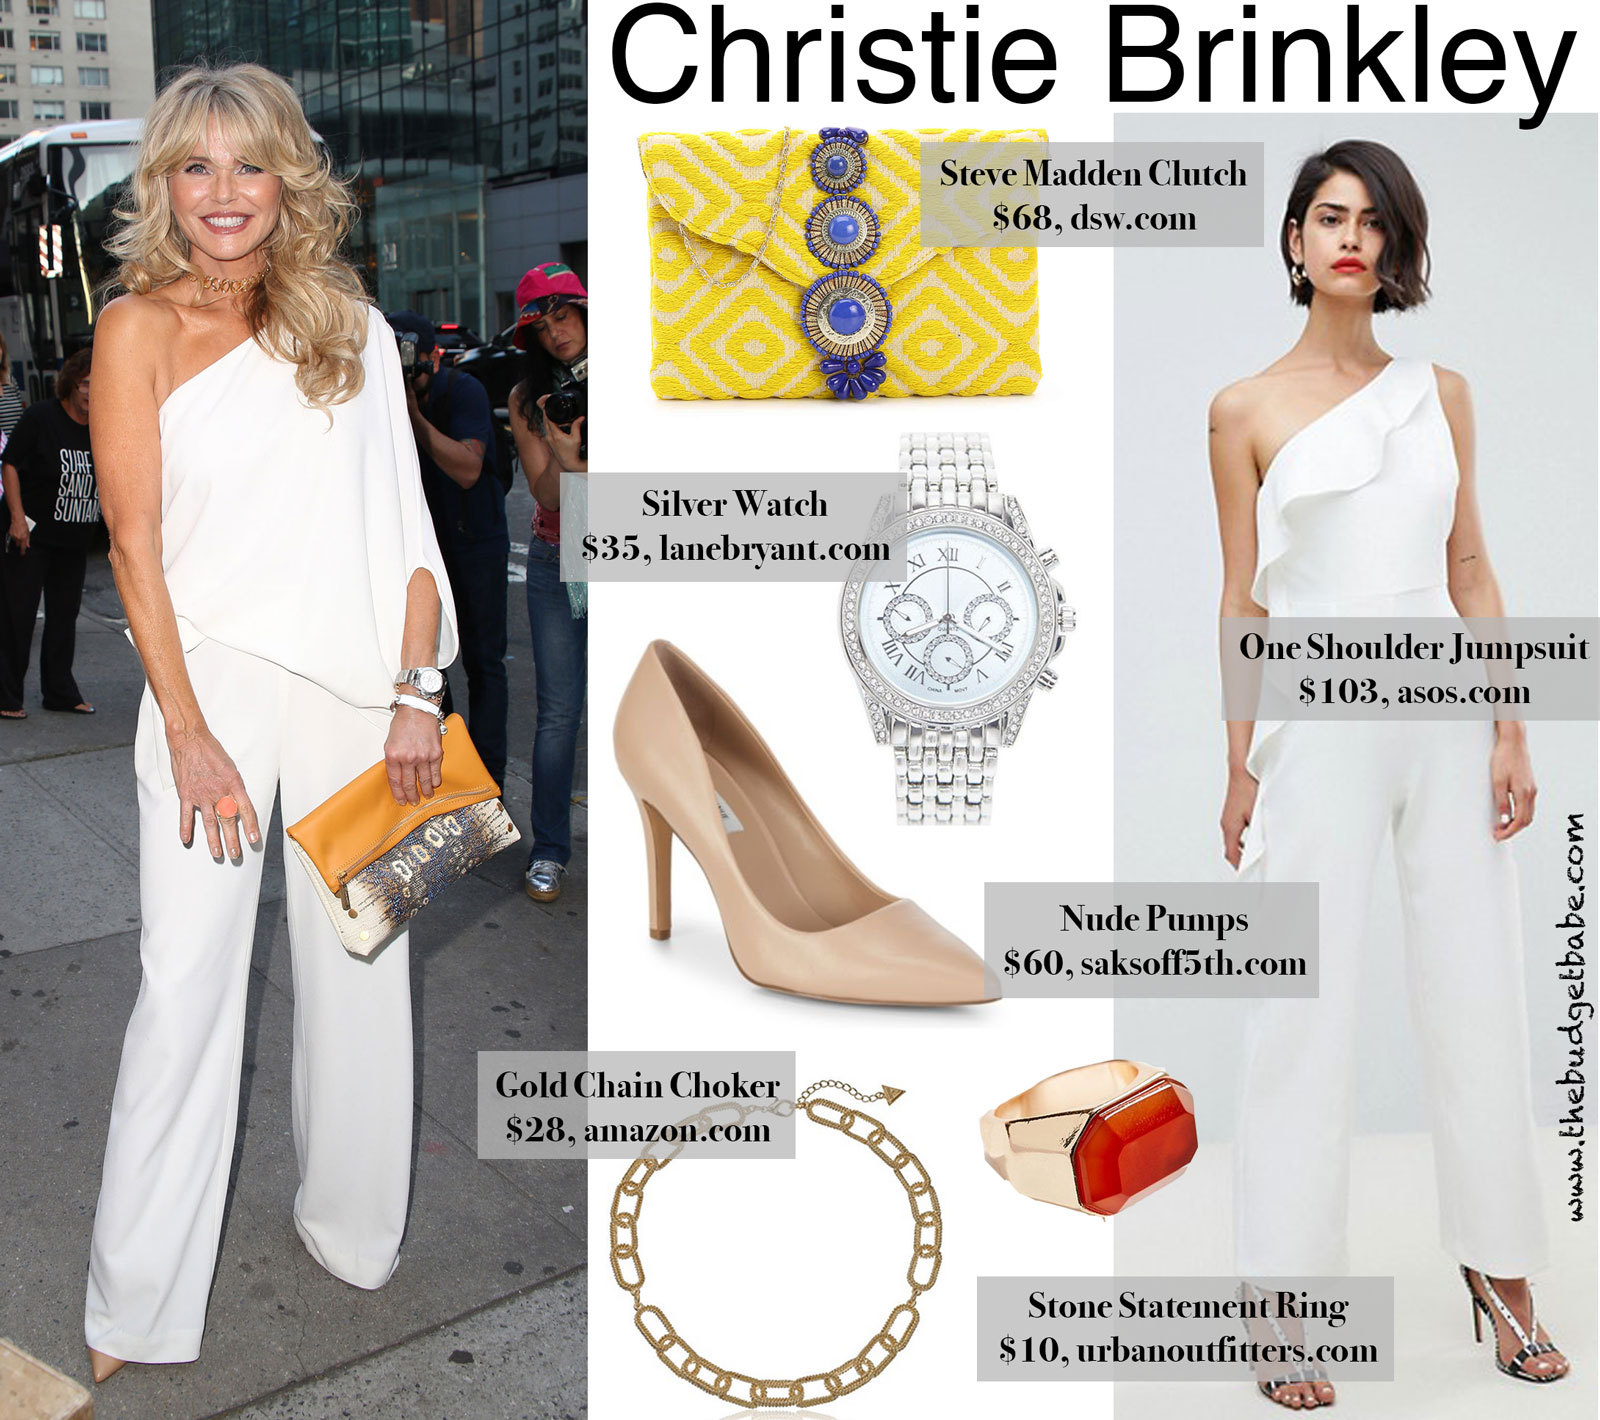 dee5032322d Christie Brinkely s One Shoulder Jumpsuit Look for Less Christie Brinkley  nails a ...